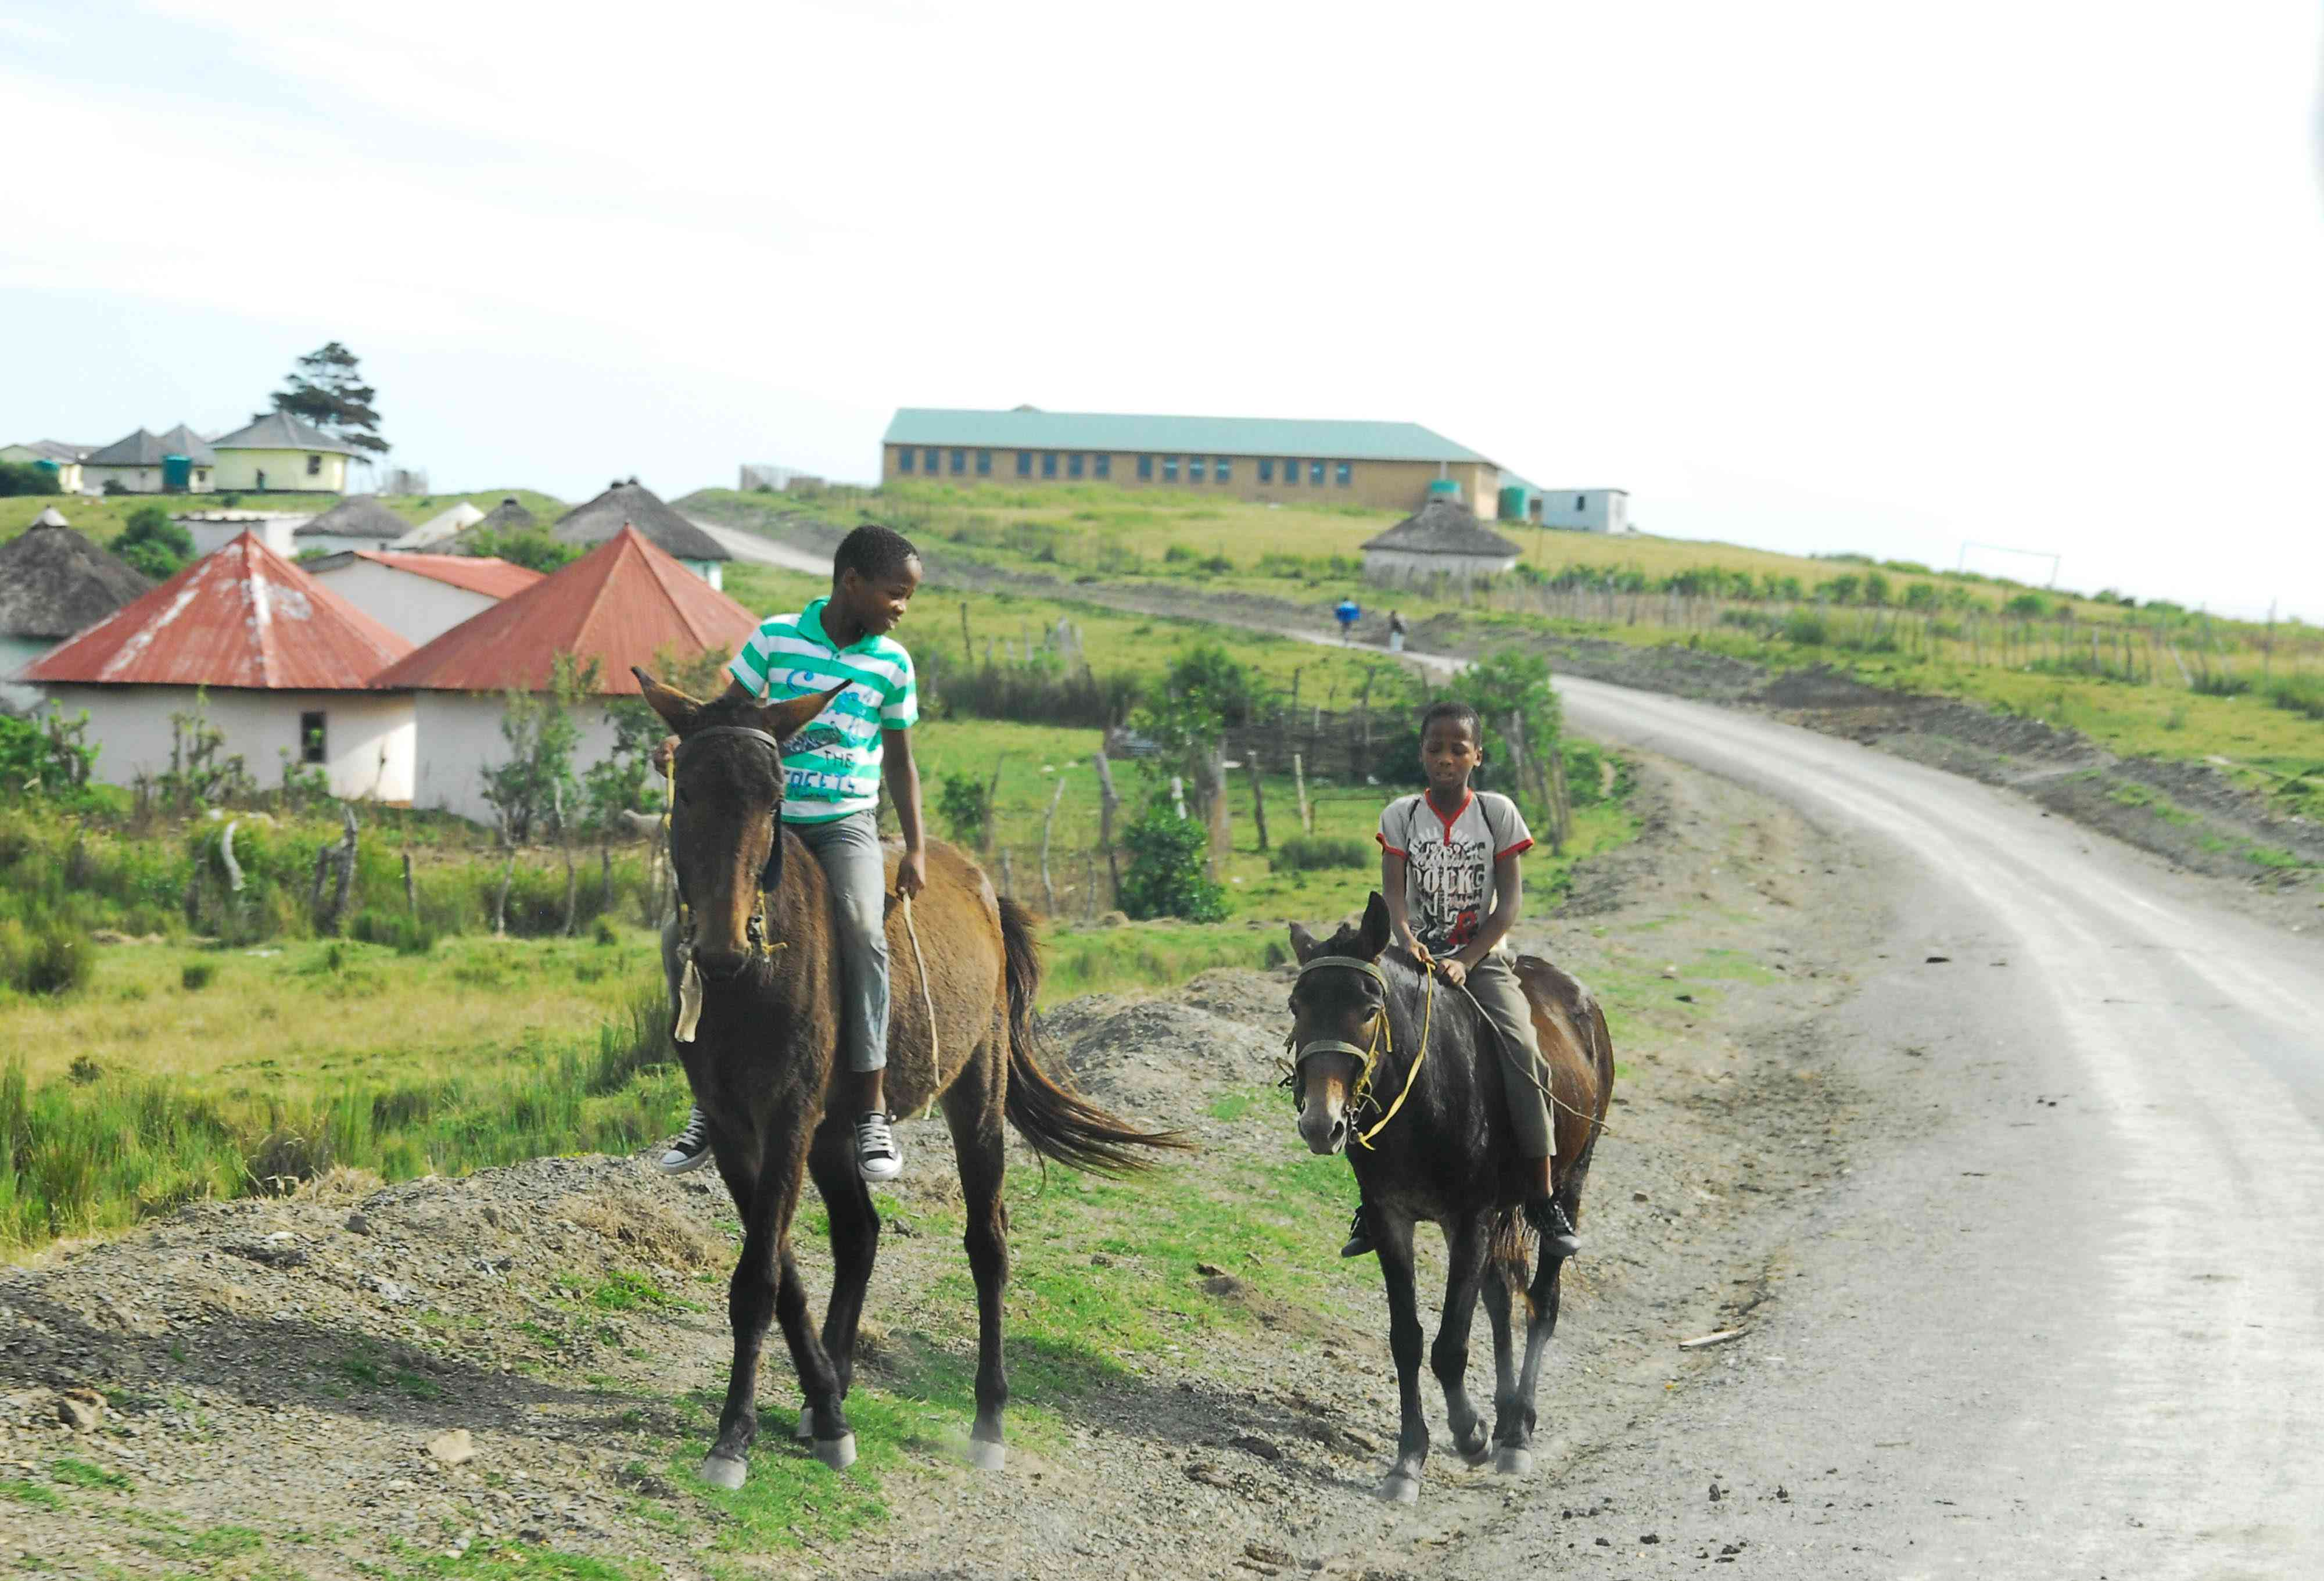 Xhosa boys riding horses along a dirt road in the Transkei, South Africa